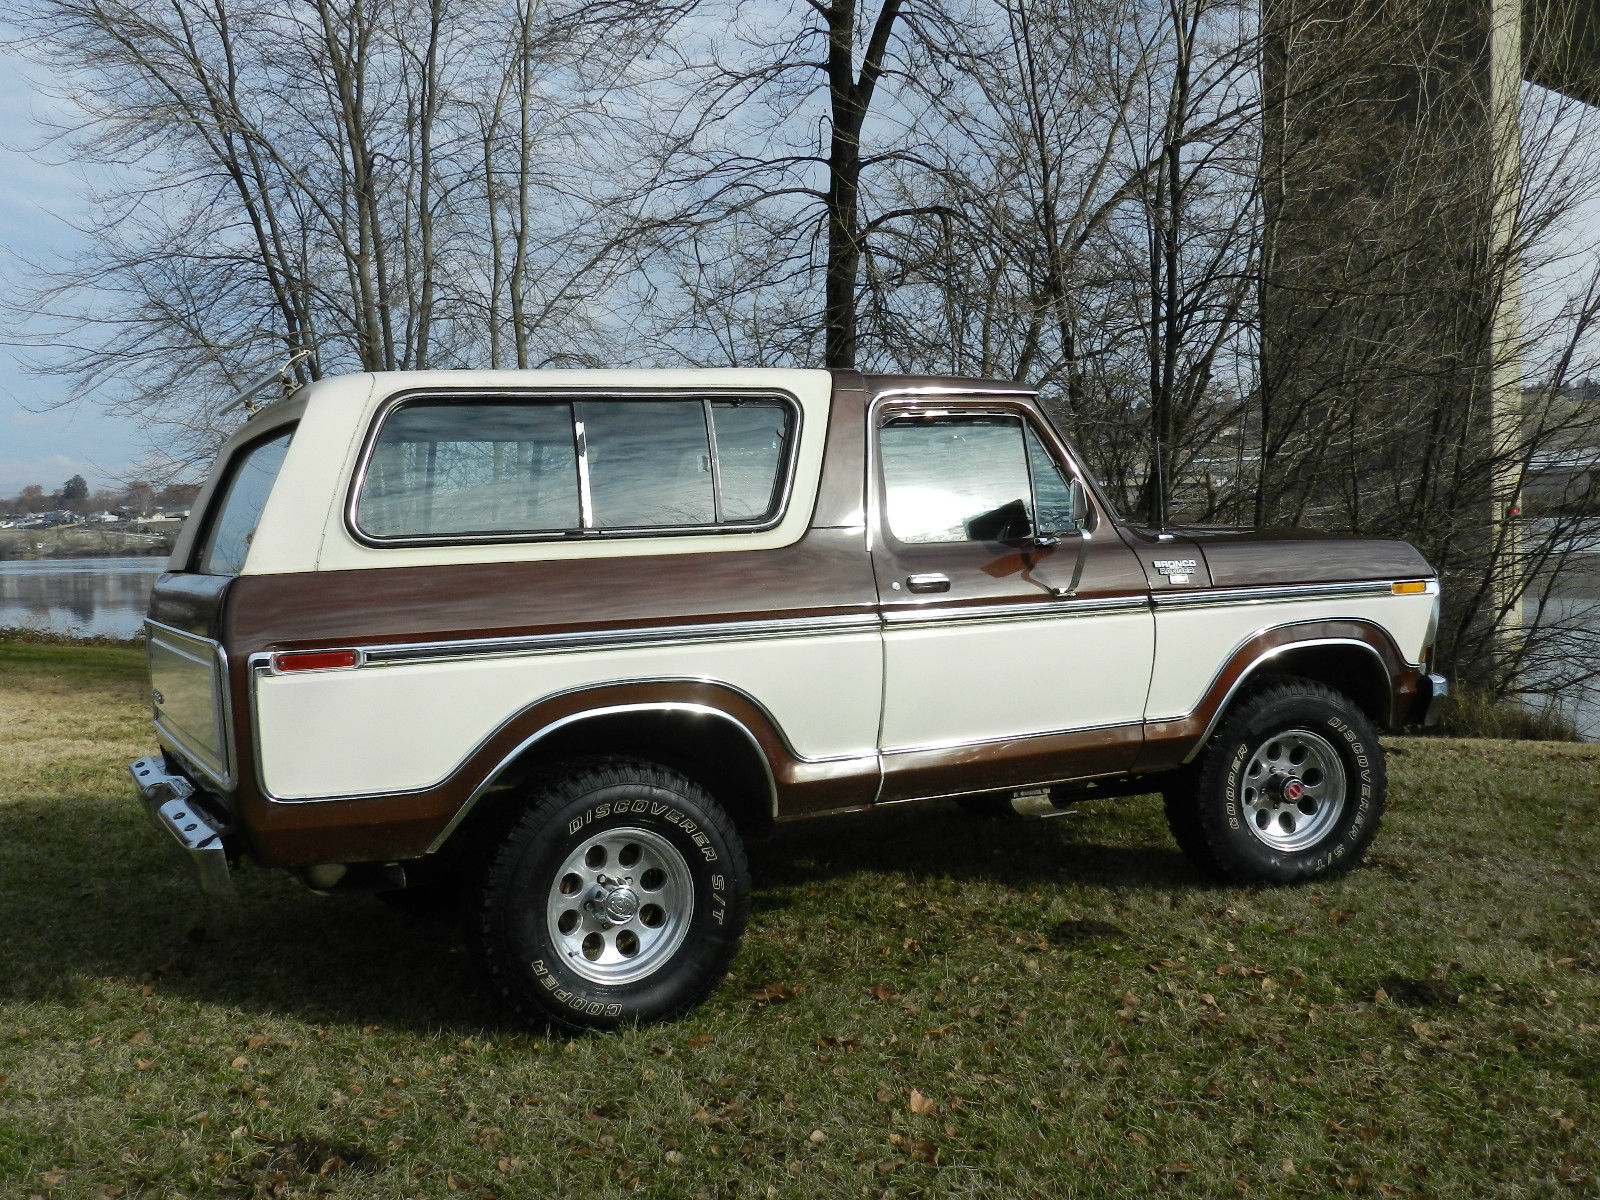 ford f150 bronco 2006 power mirror wiring diagram 1979 4x4 xlt rare orignal paint and body